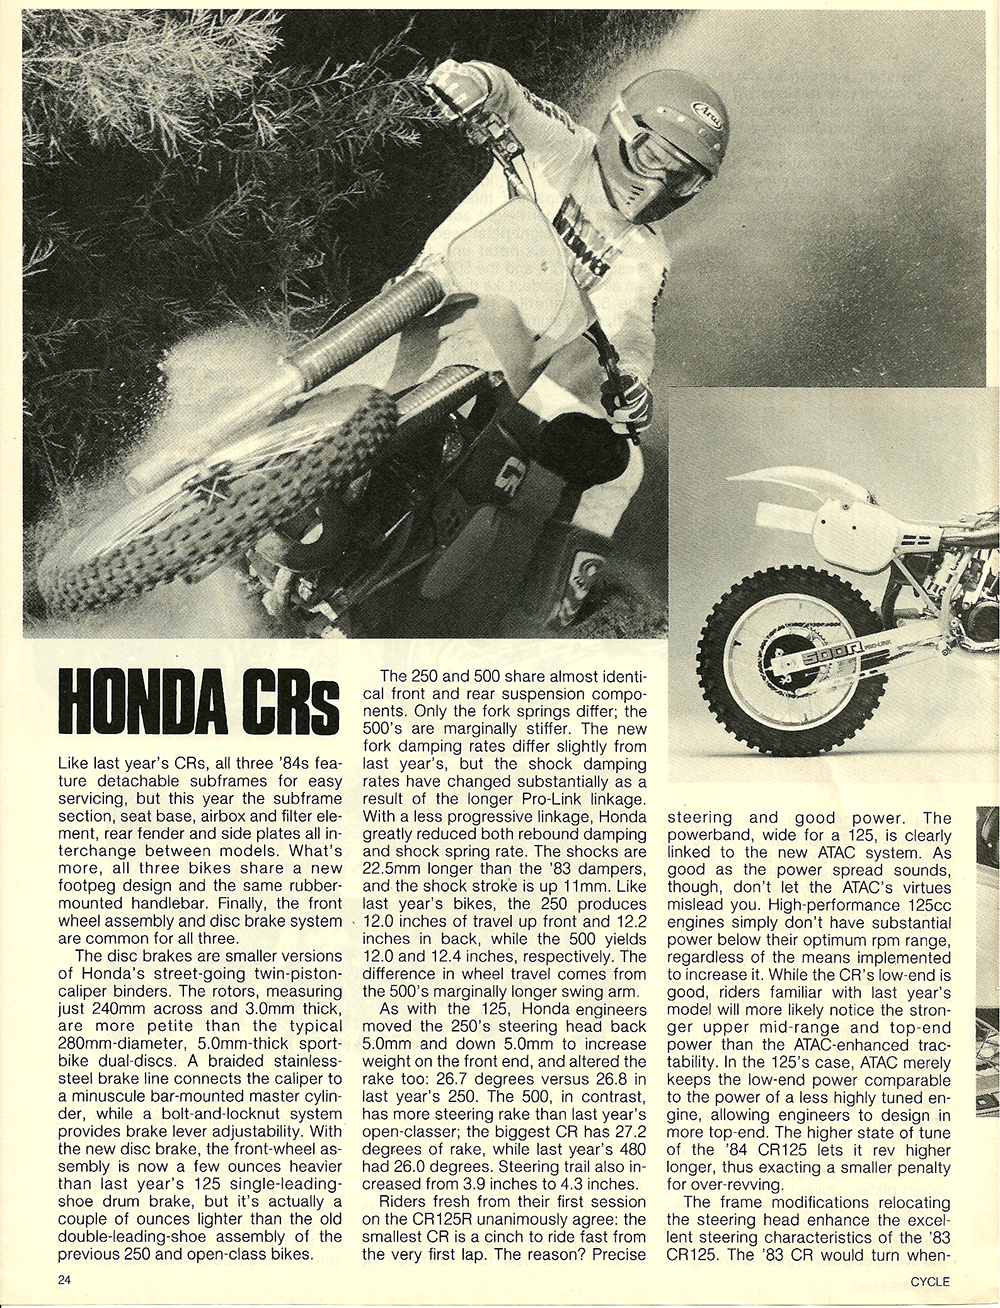 1984 Honda CR 125 250 500 road test 07.jpg